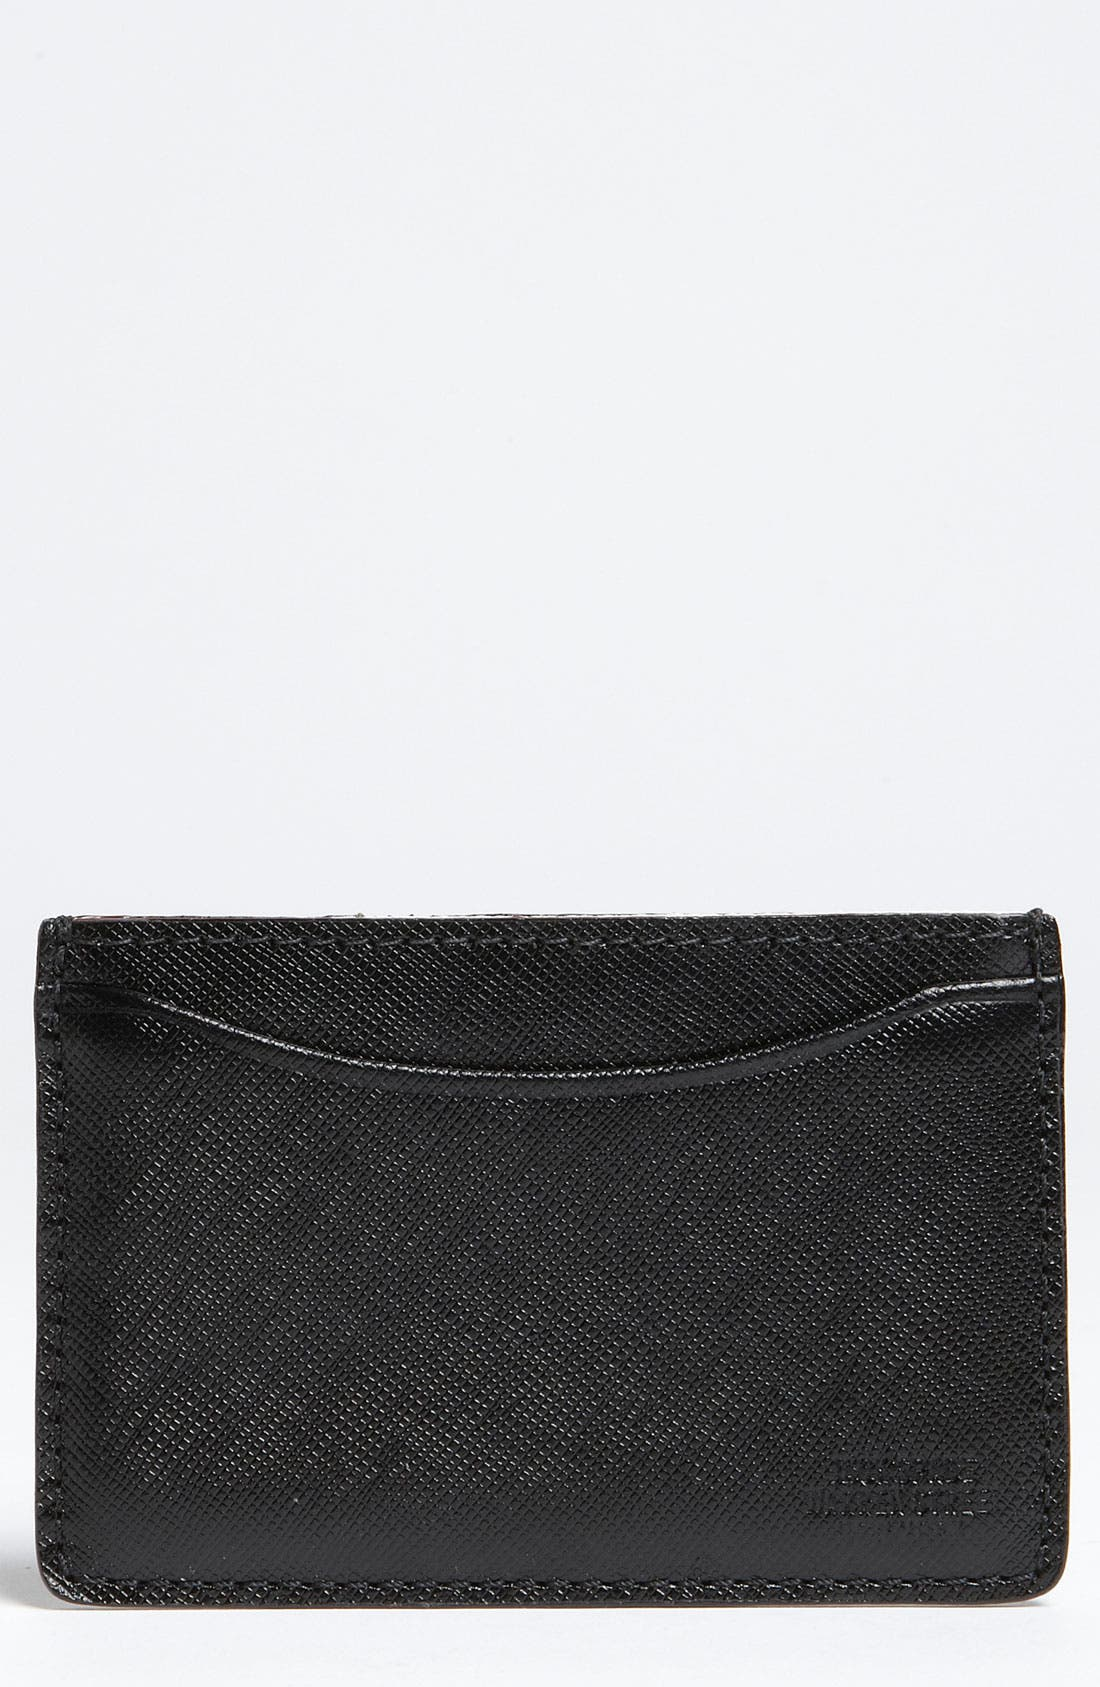 Alternate Image 1 Selected - Jack Spade Crosshatched Leather Card Holder